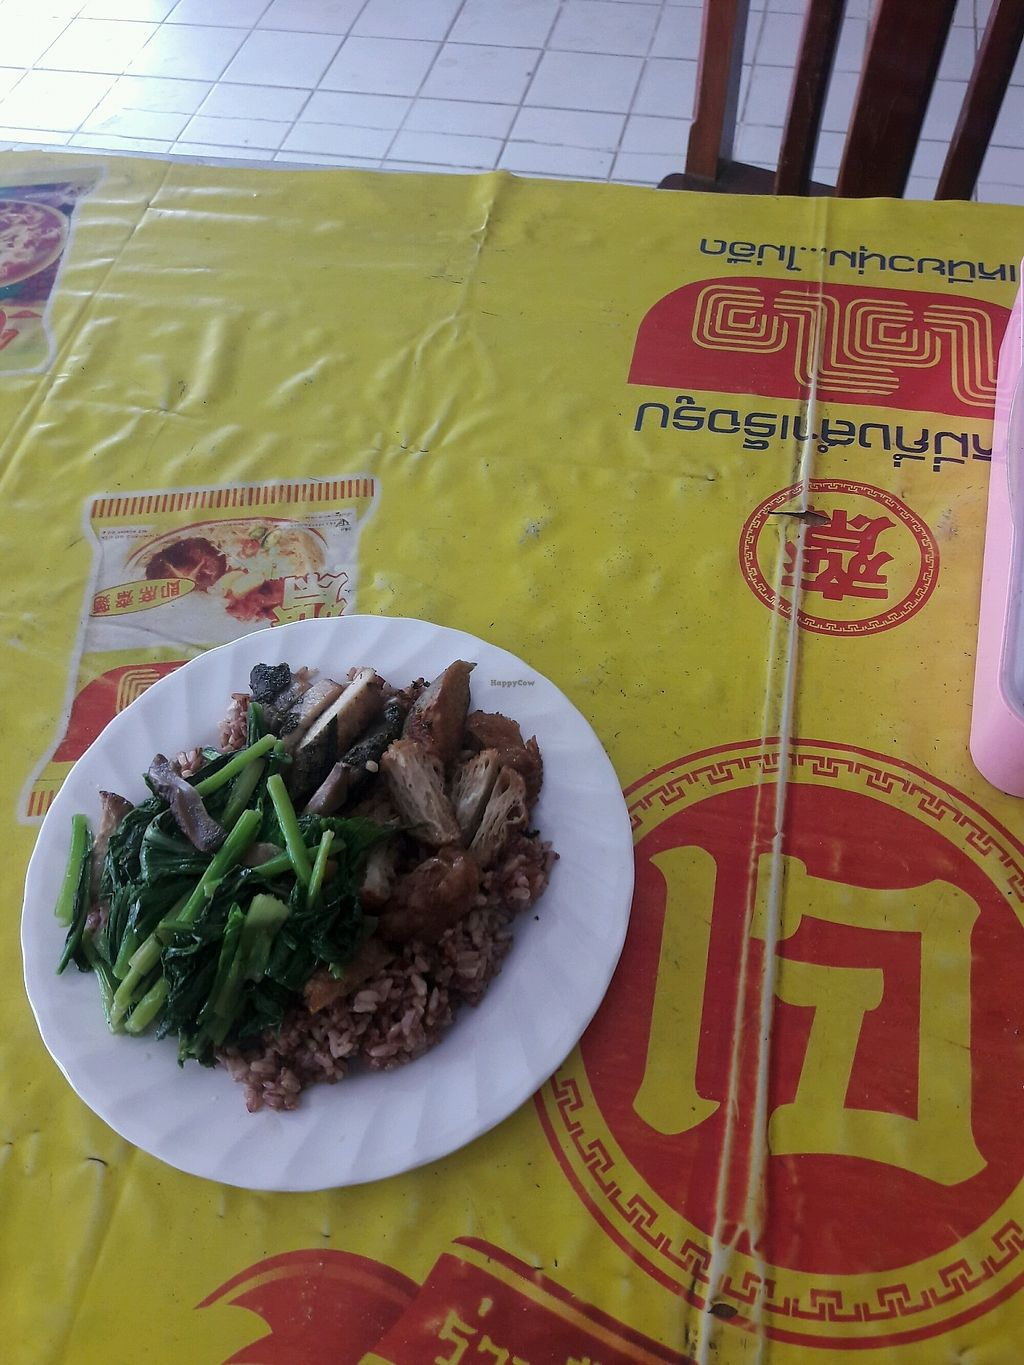 """Photo of Veg Restaurant  by <a href=""""/members/profile/DanJy"""">DanJy</a> <br/>mock meats and greens with rice <br/> February 8, 2018  - <a href='/contact/abuse/image/111569/356356'>Report</a>"""